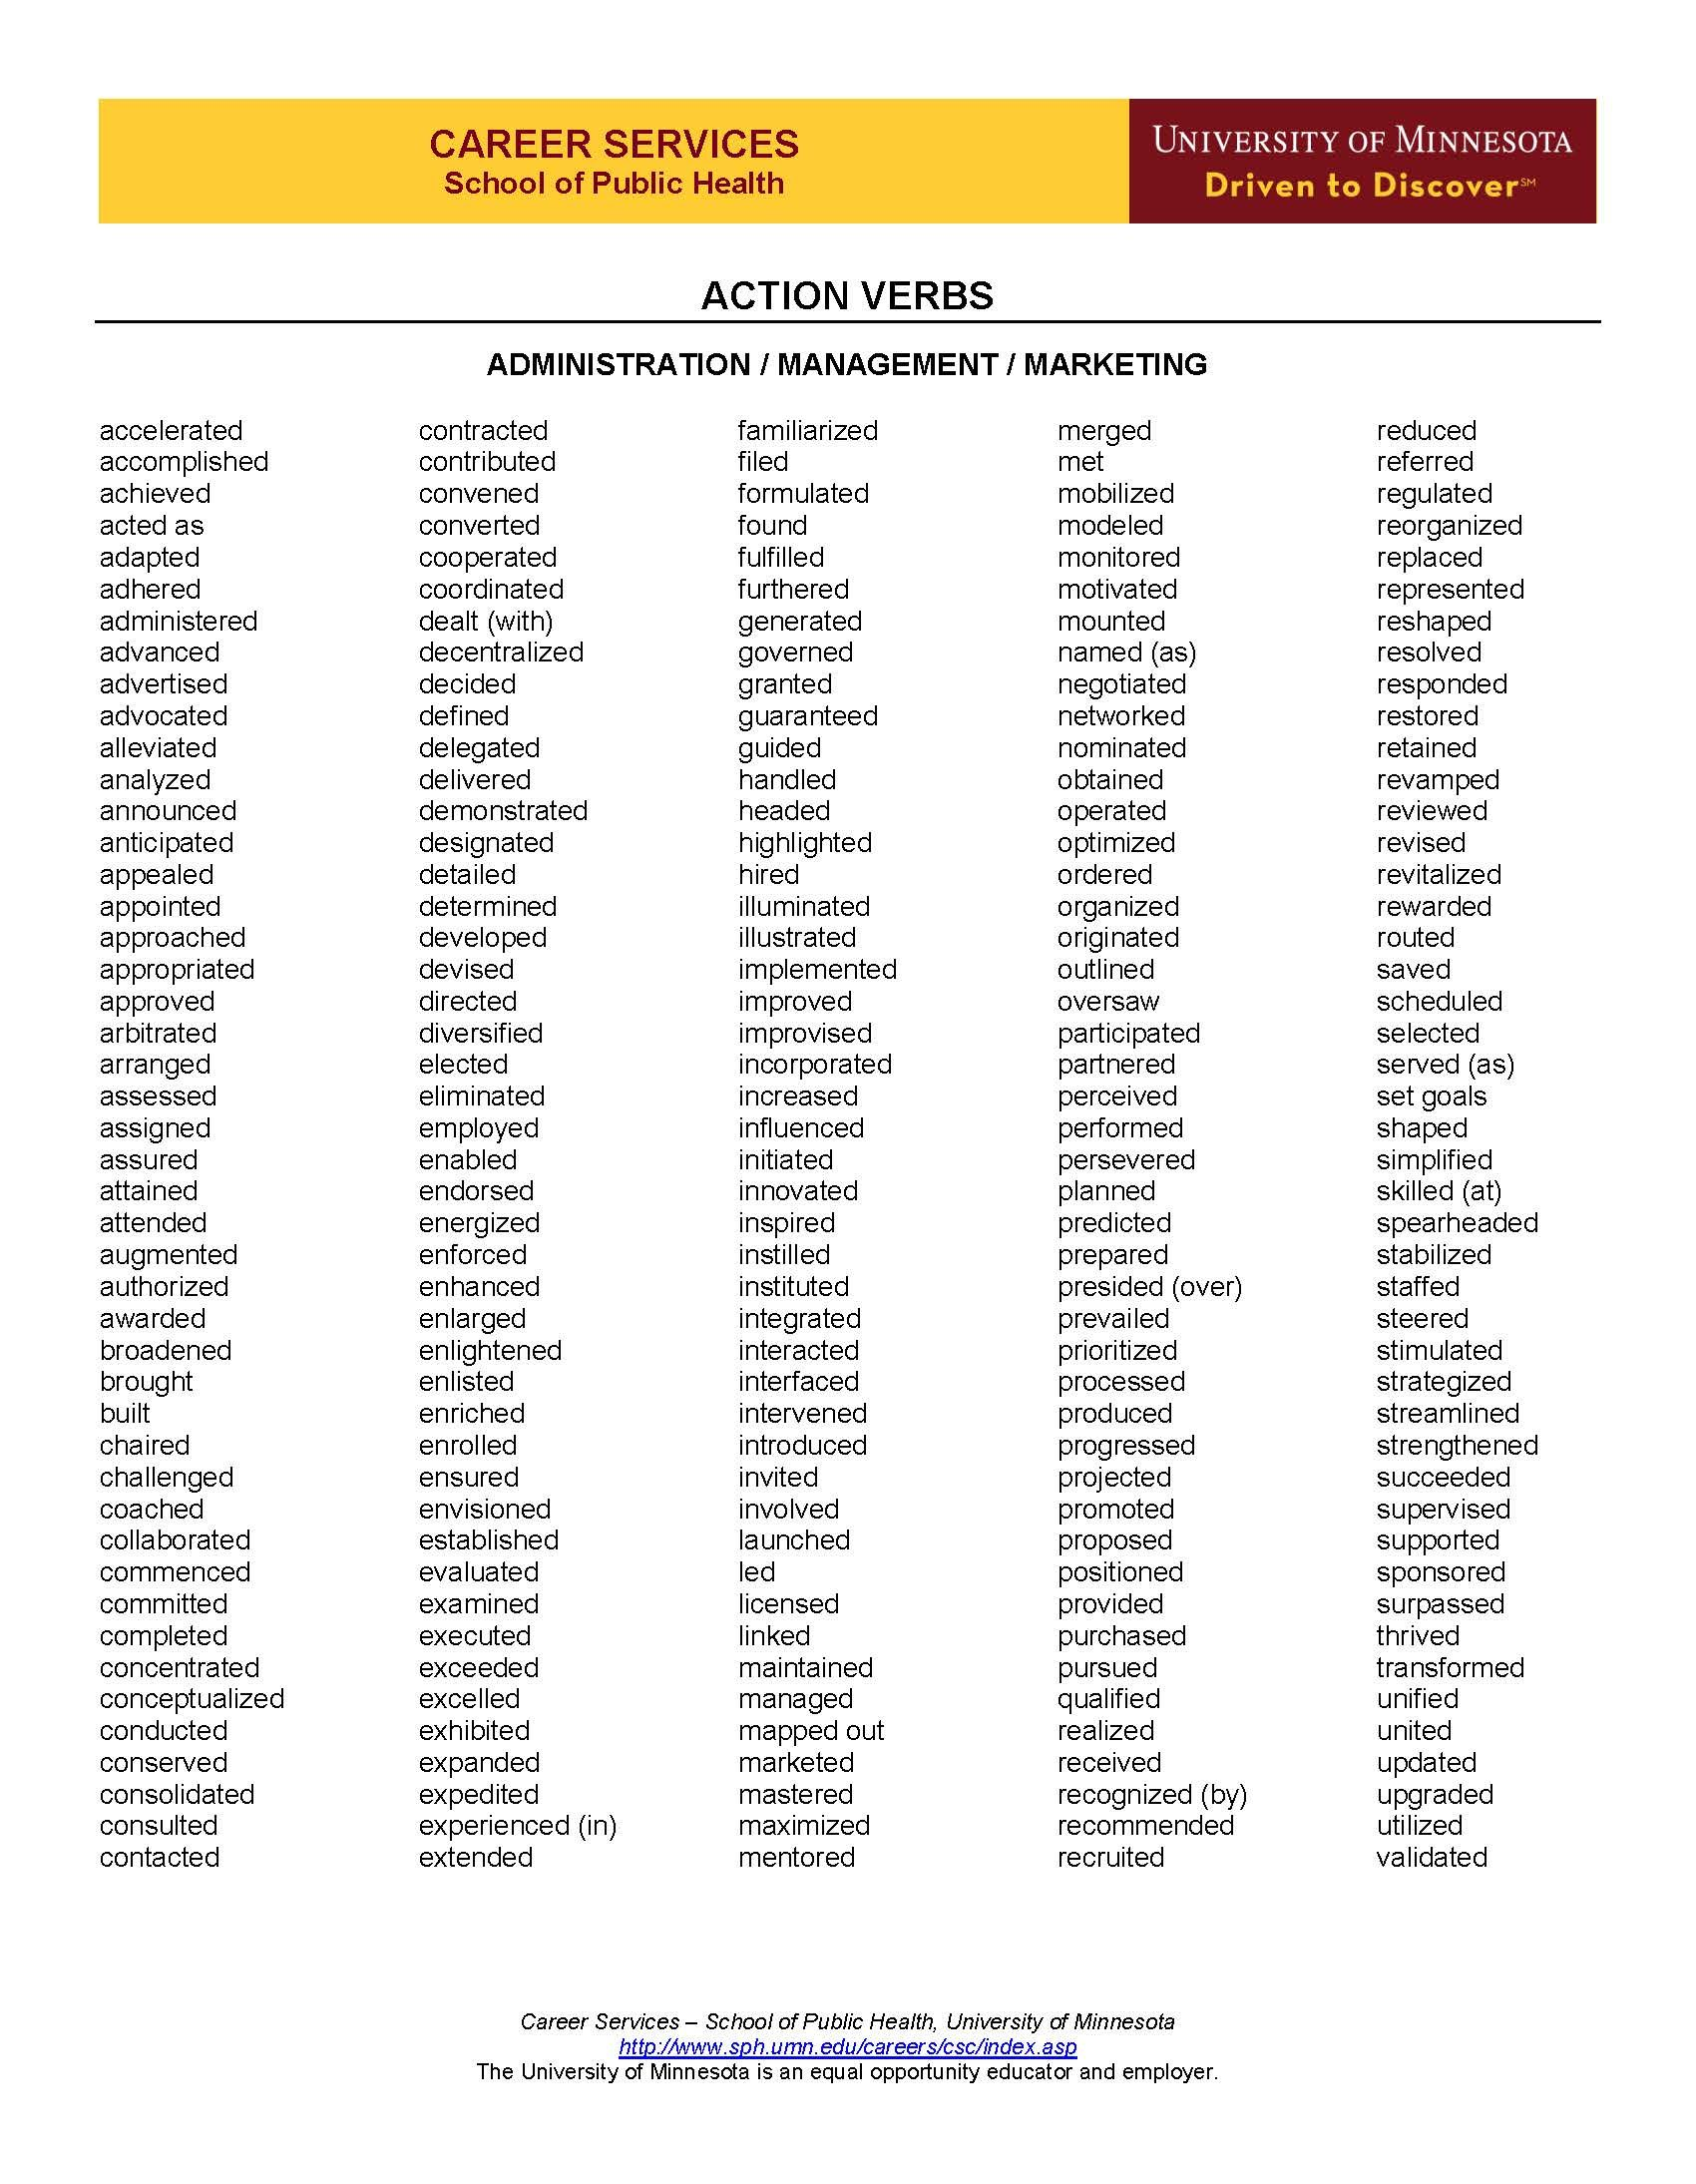 Action Verbs For Resumes Action Verbs Page 1  Resume Guide  Pinterest  Action Verbs